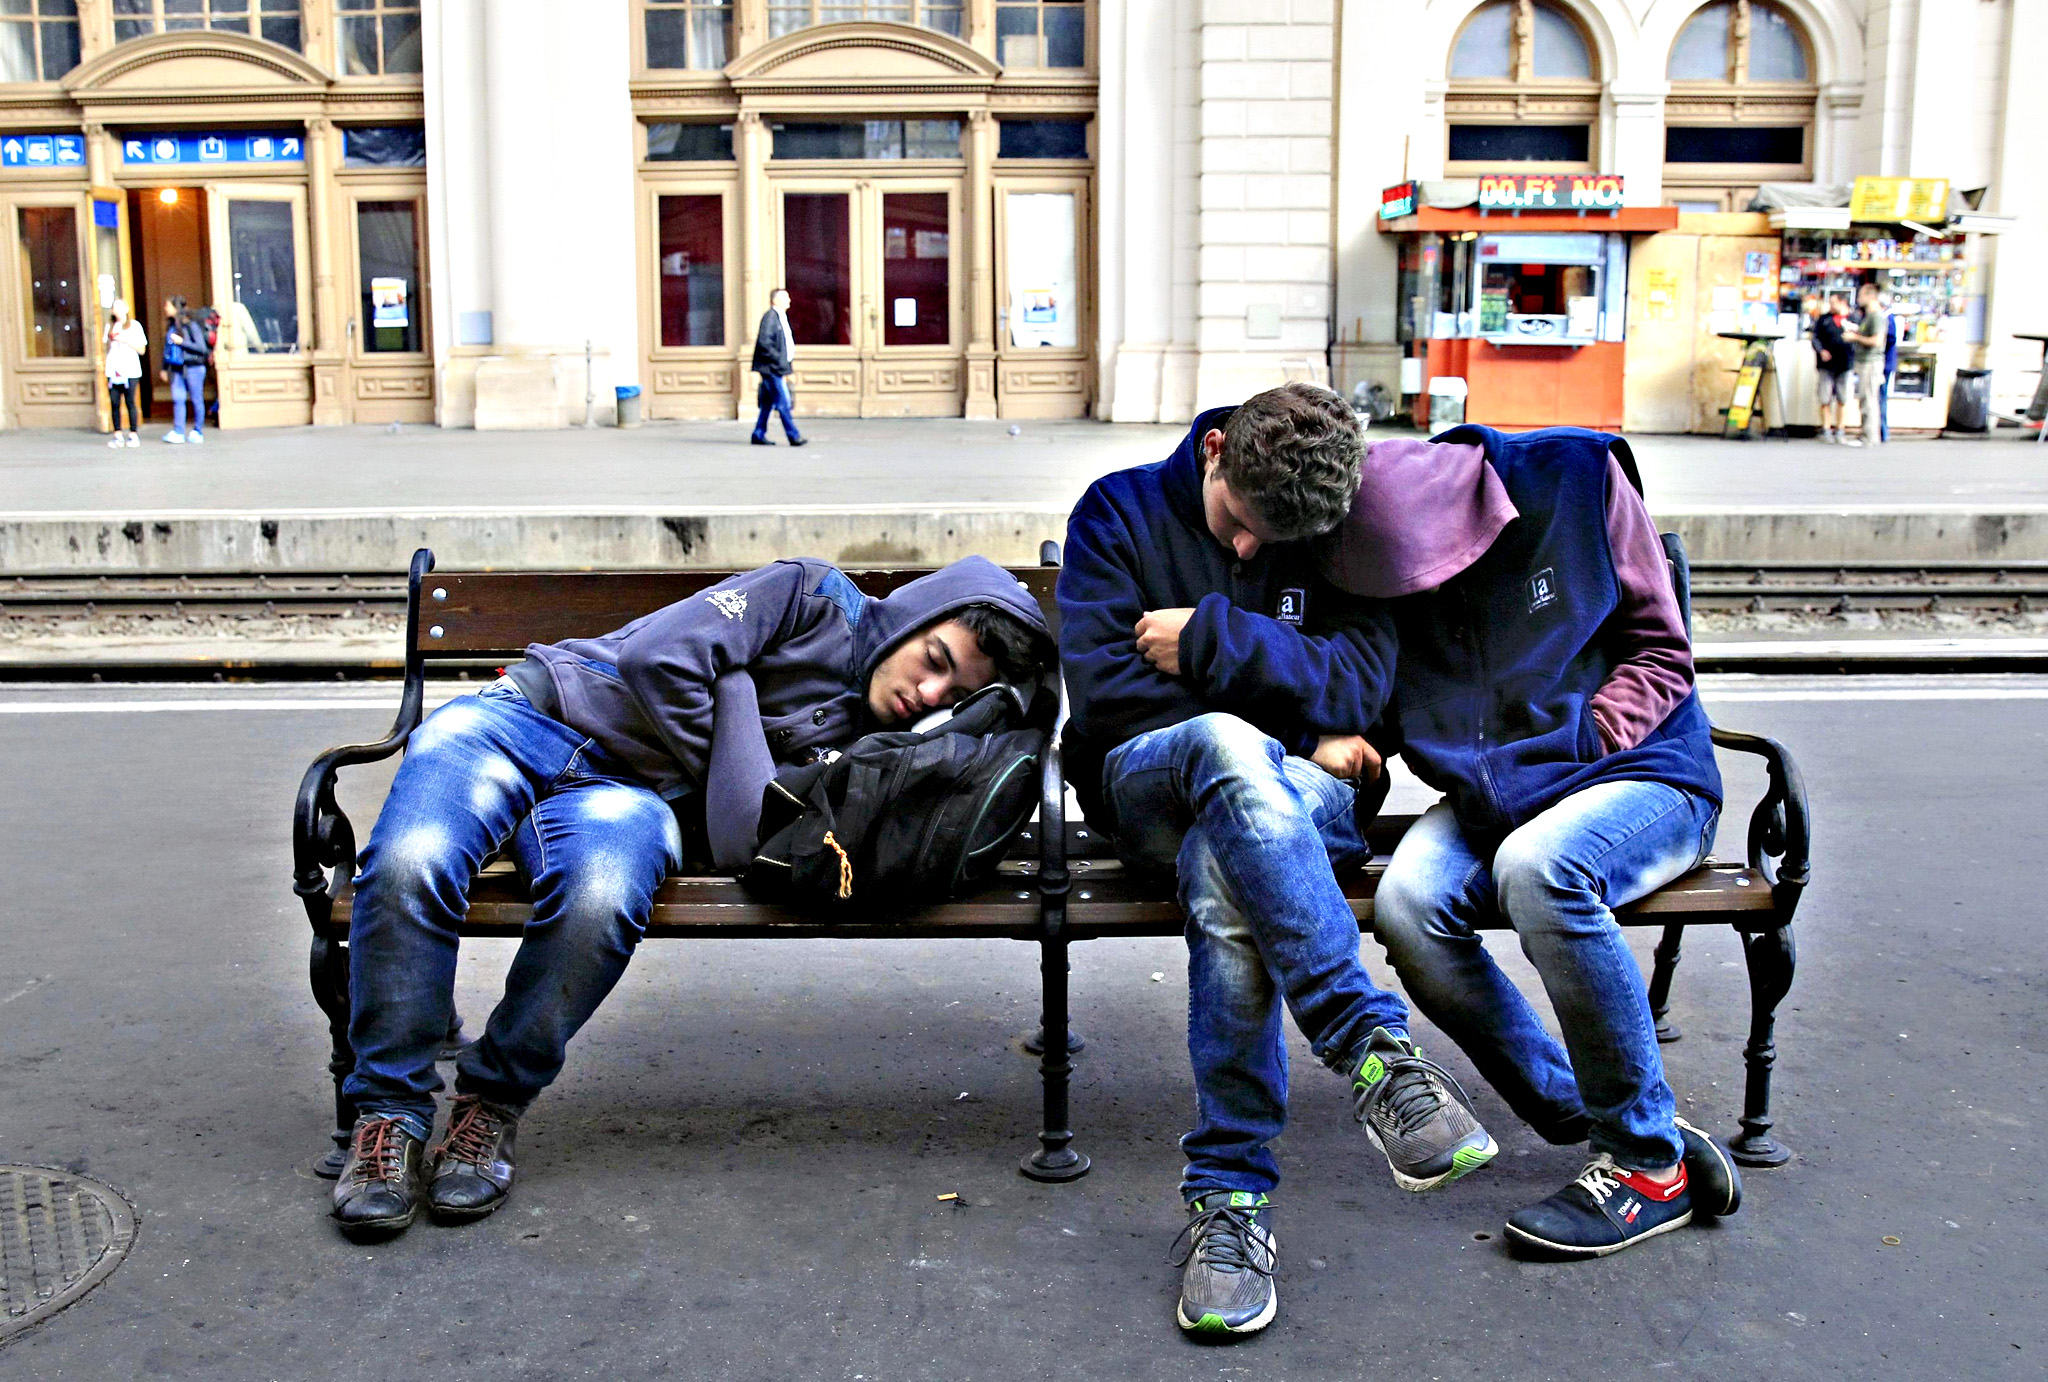 Migrants rest on a bench as they wait for trains at Keleti station in Budapest...Migrants rest on a bench as they wait for trains at Keleti station in Budapest, Hungary September 9, 2015